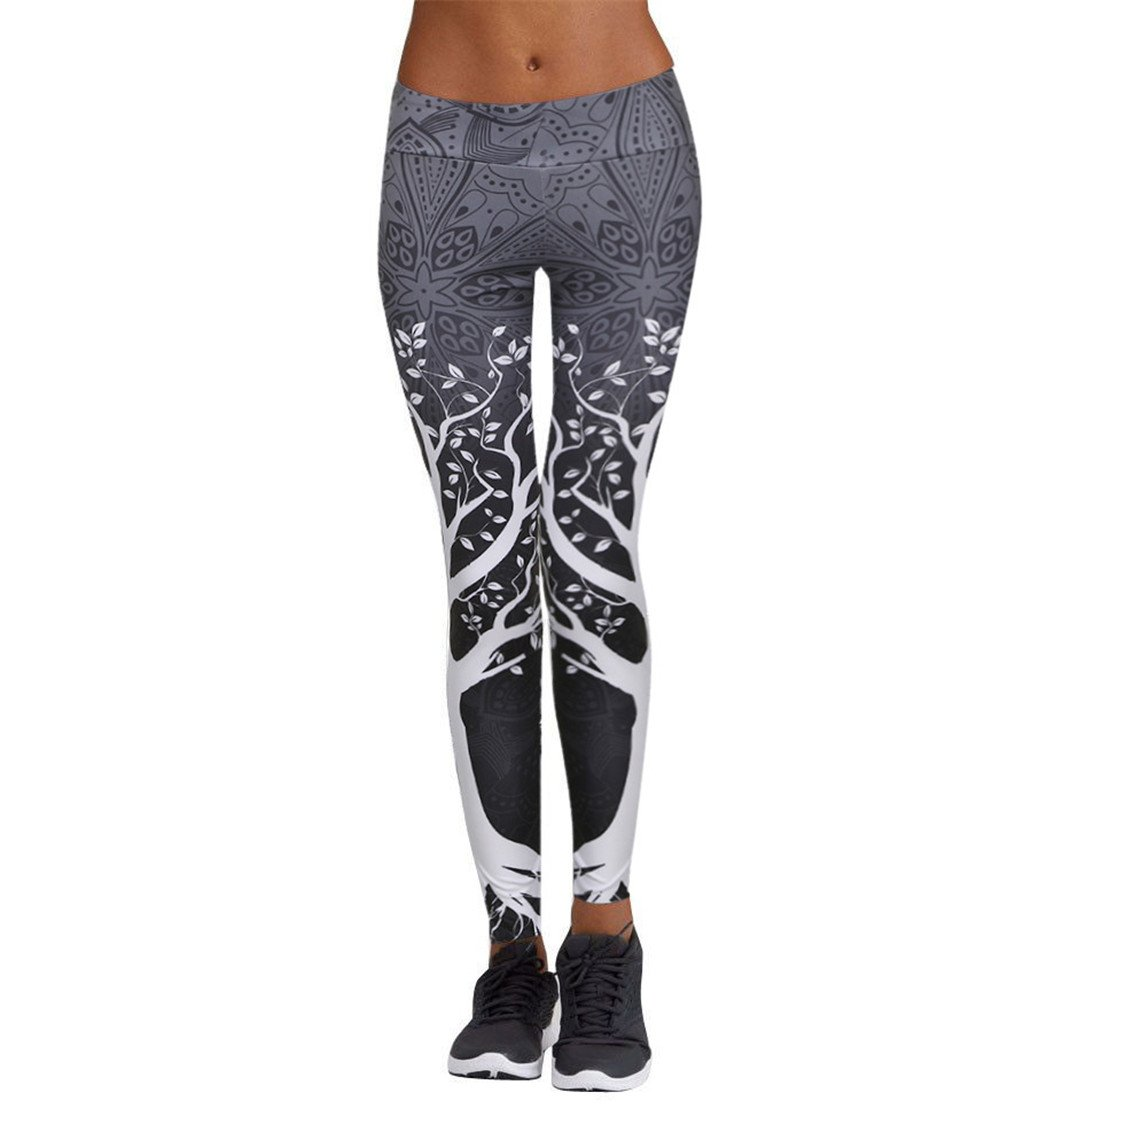 Nadition Pants Clearance !!! Women High Waist Slimming for Yoga, Fitness & Gym Leggings Pants